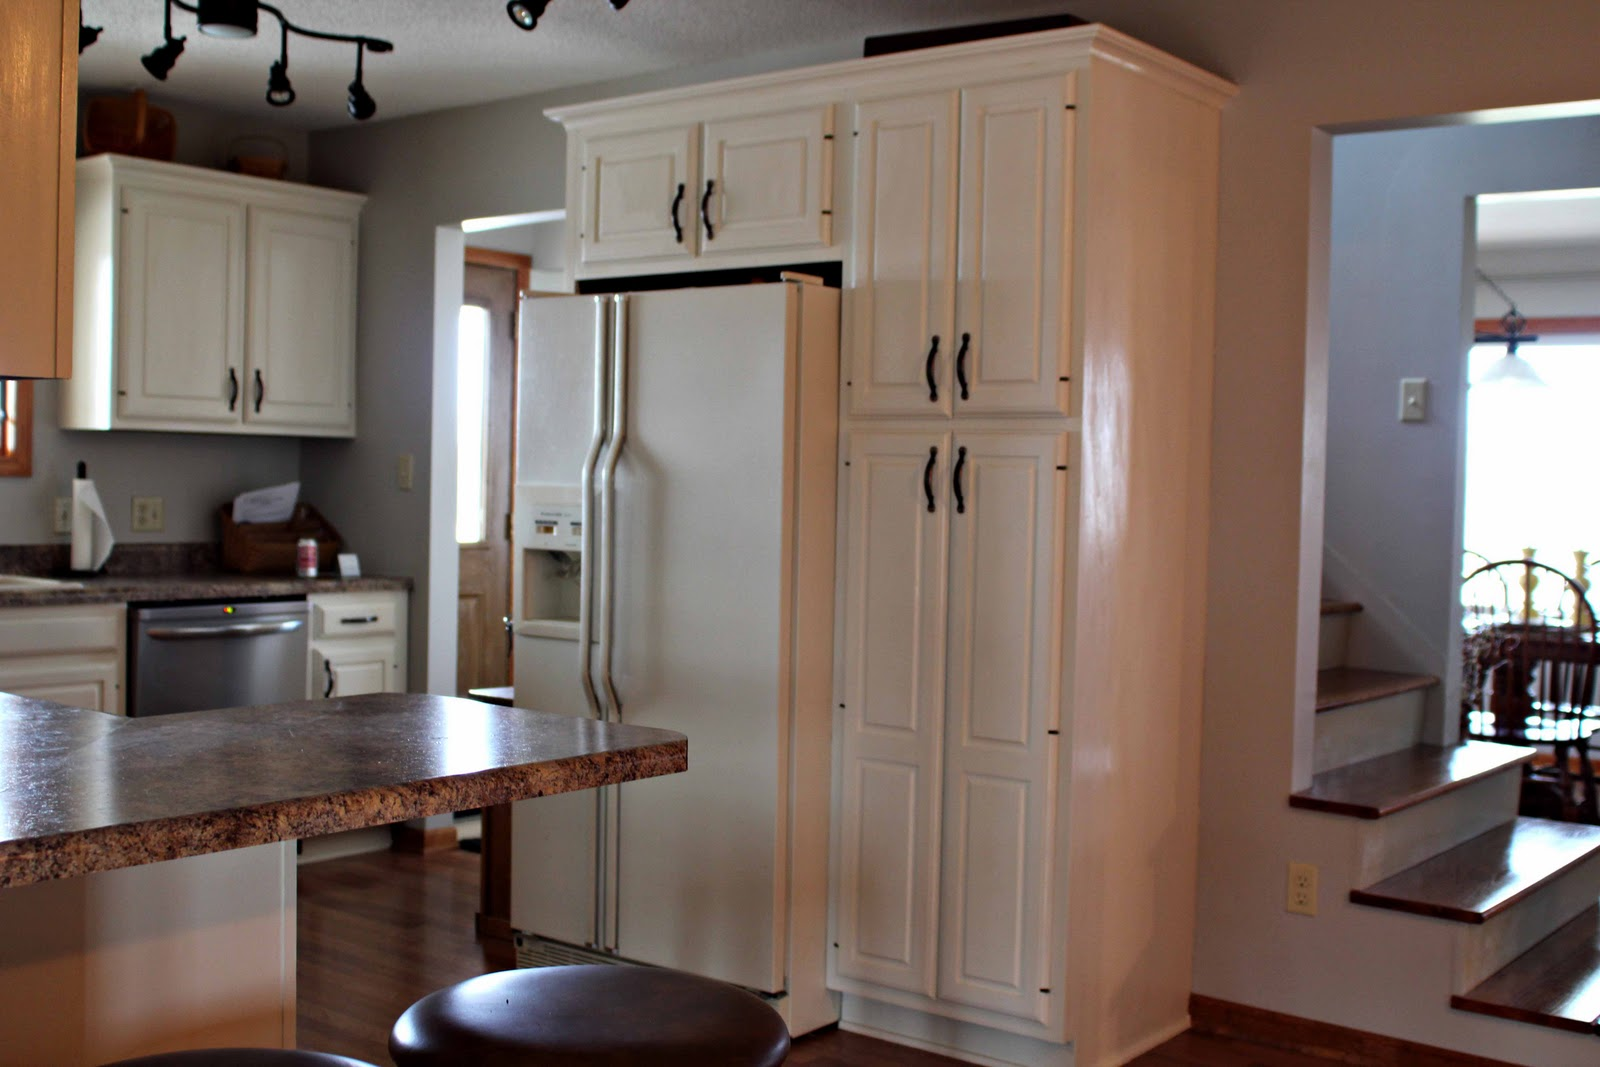 Kitchens Cabinets for around Refrigerator